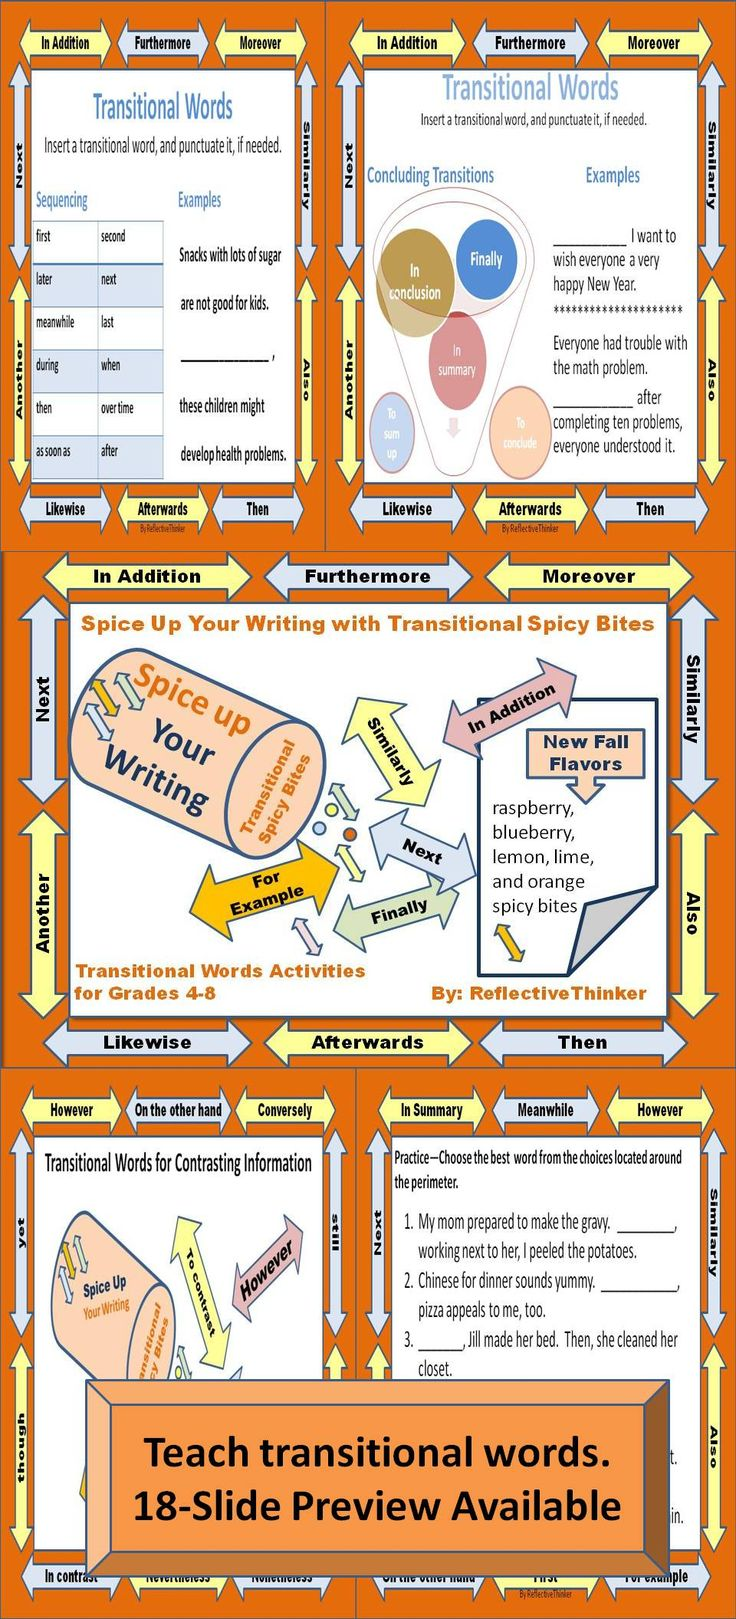 Transitional Words Spicy Bites is 32 slides with engaging activities and printables for Grades 4-8 designed to spice up students' writing. After using this resource, I observed a huge difference in my students' knowledge about and use of transitions.  Use the materials on a bulletin board to remind students to use transitional words in their writing in the New Year. Use it as a slideshow or print and assemble the pages in packets or handouts. #transitionalwords #transitions  #CCSS #newyear